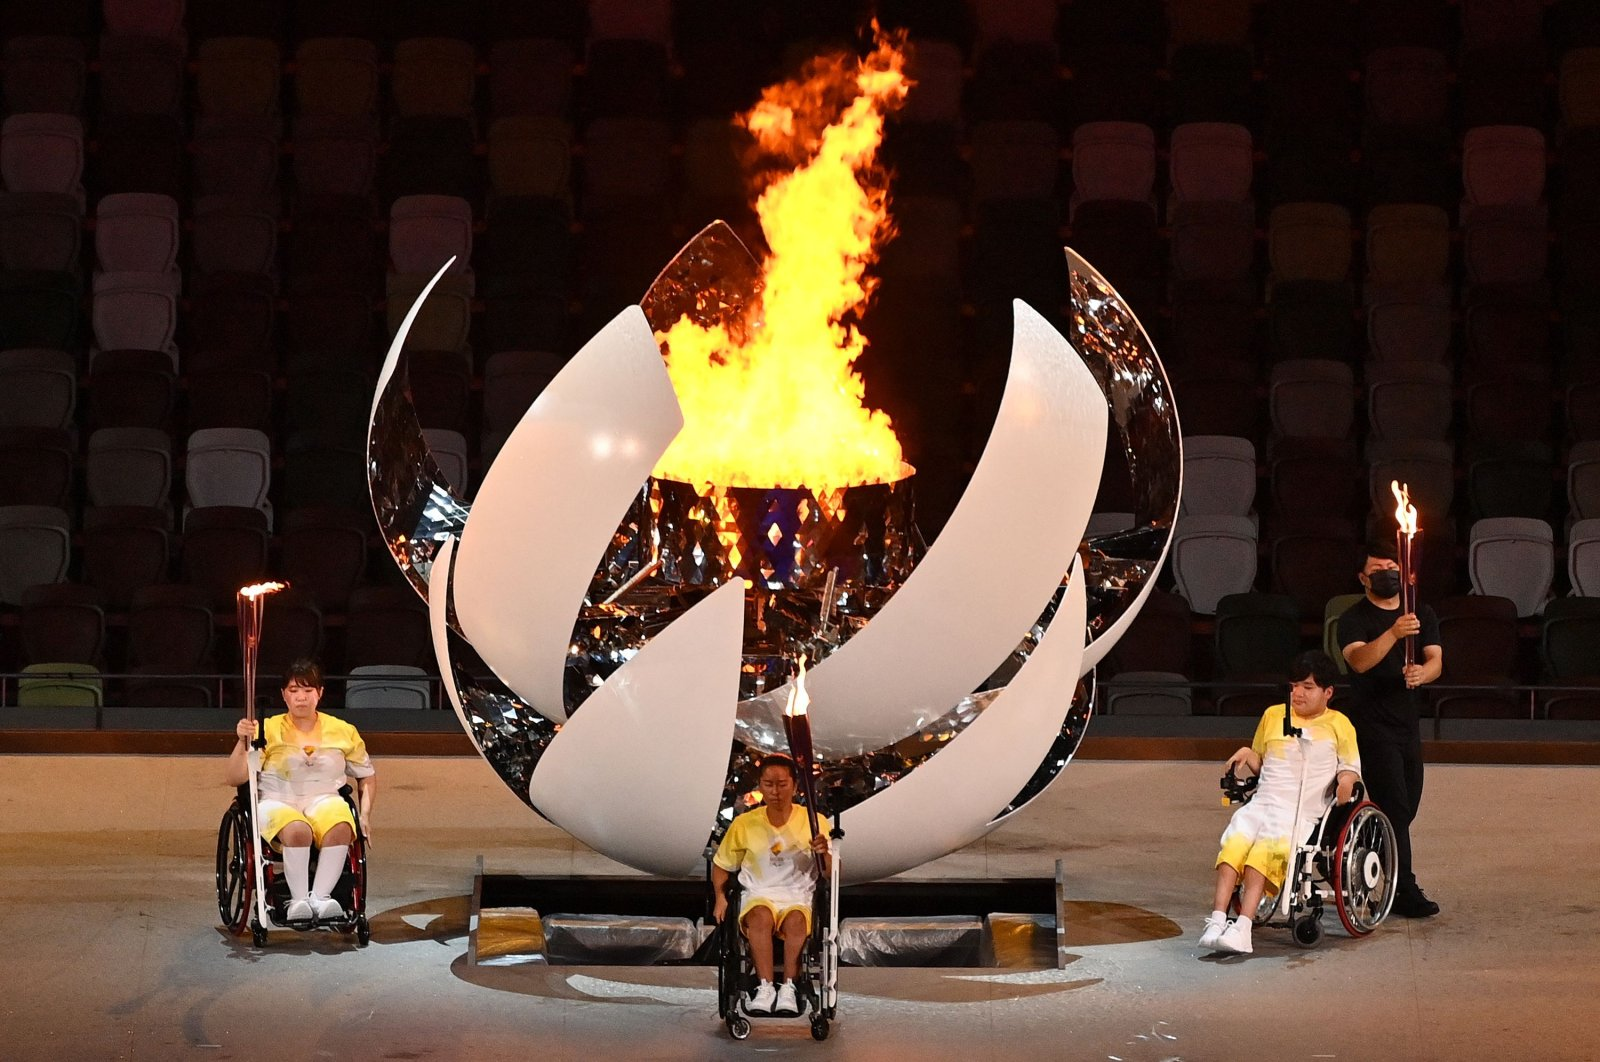 Three torchbearers pose after lighting the Paralympic cauldron during the opening ceremony for the Tokyo 2020 Paralympic Games at the Olympic Stadium in Tokyo, Japan, Aug. 24, 2021. (AFP Photo)